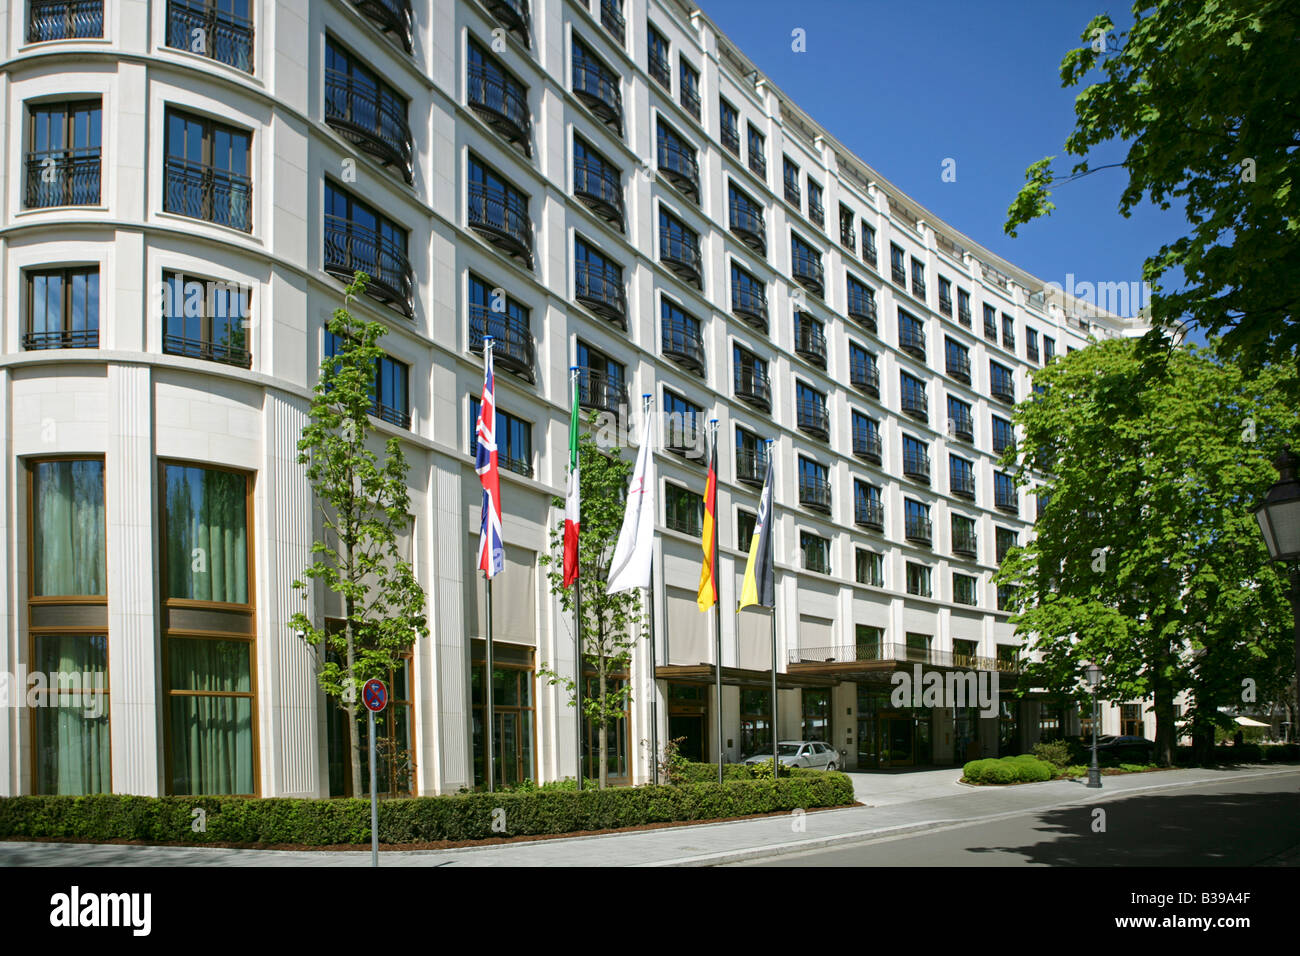 5 sterne the charles hotel in m nchen 5 star hotel in munich stock photo 19259871 alamy. Black Bedroom Furniture Sets. Home Design Ideas